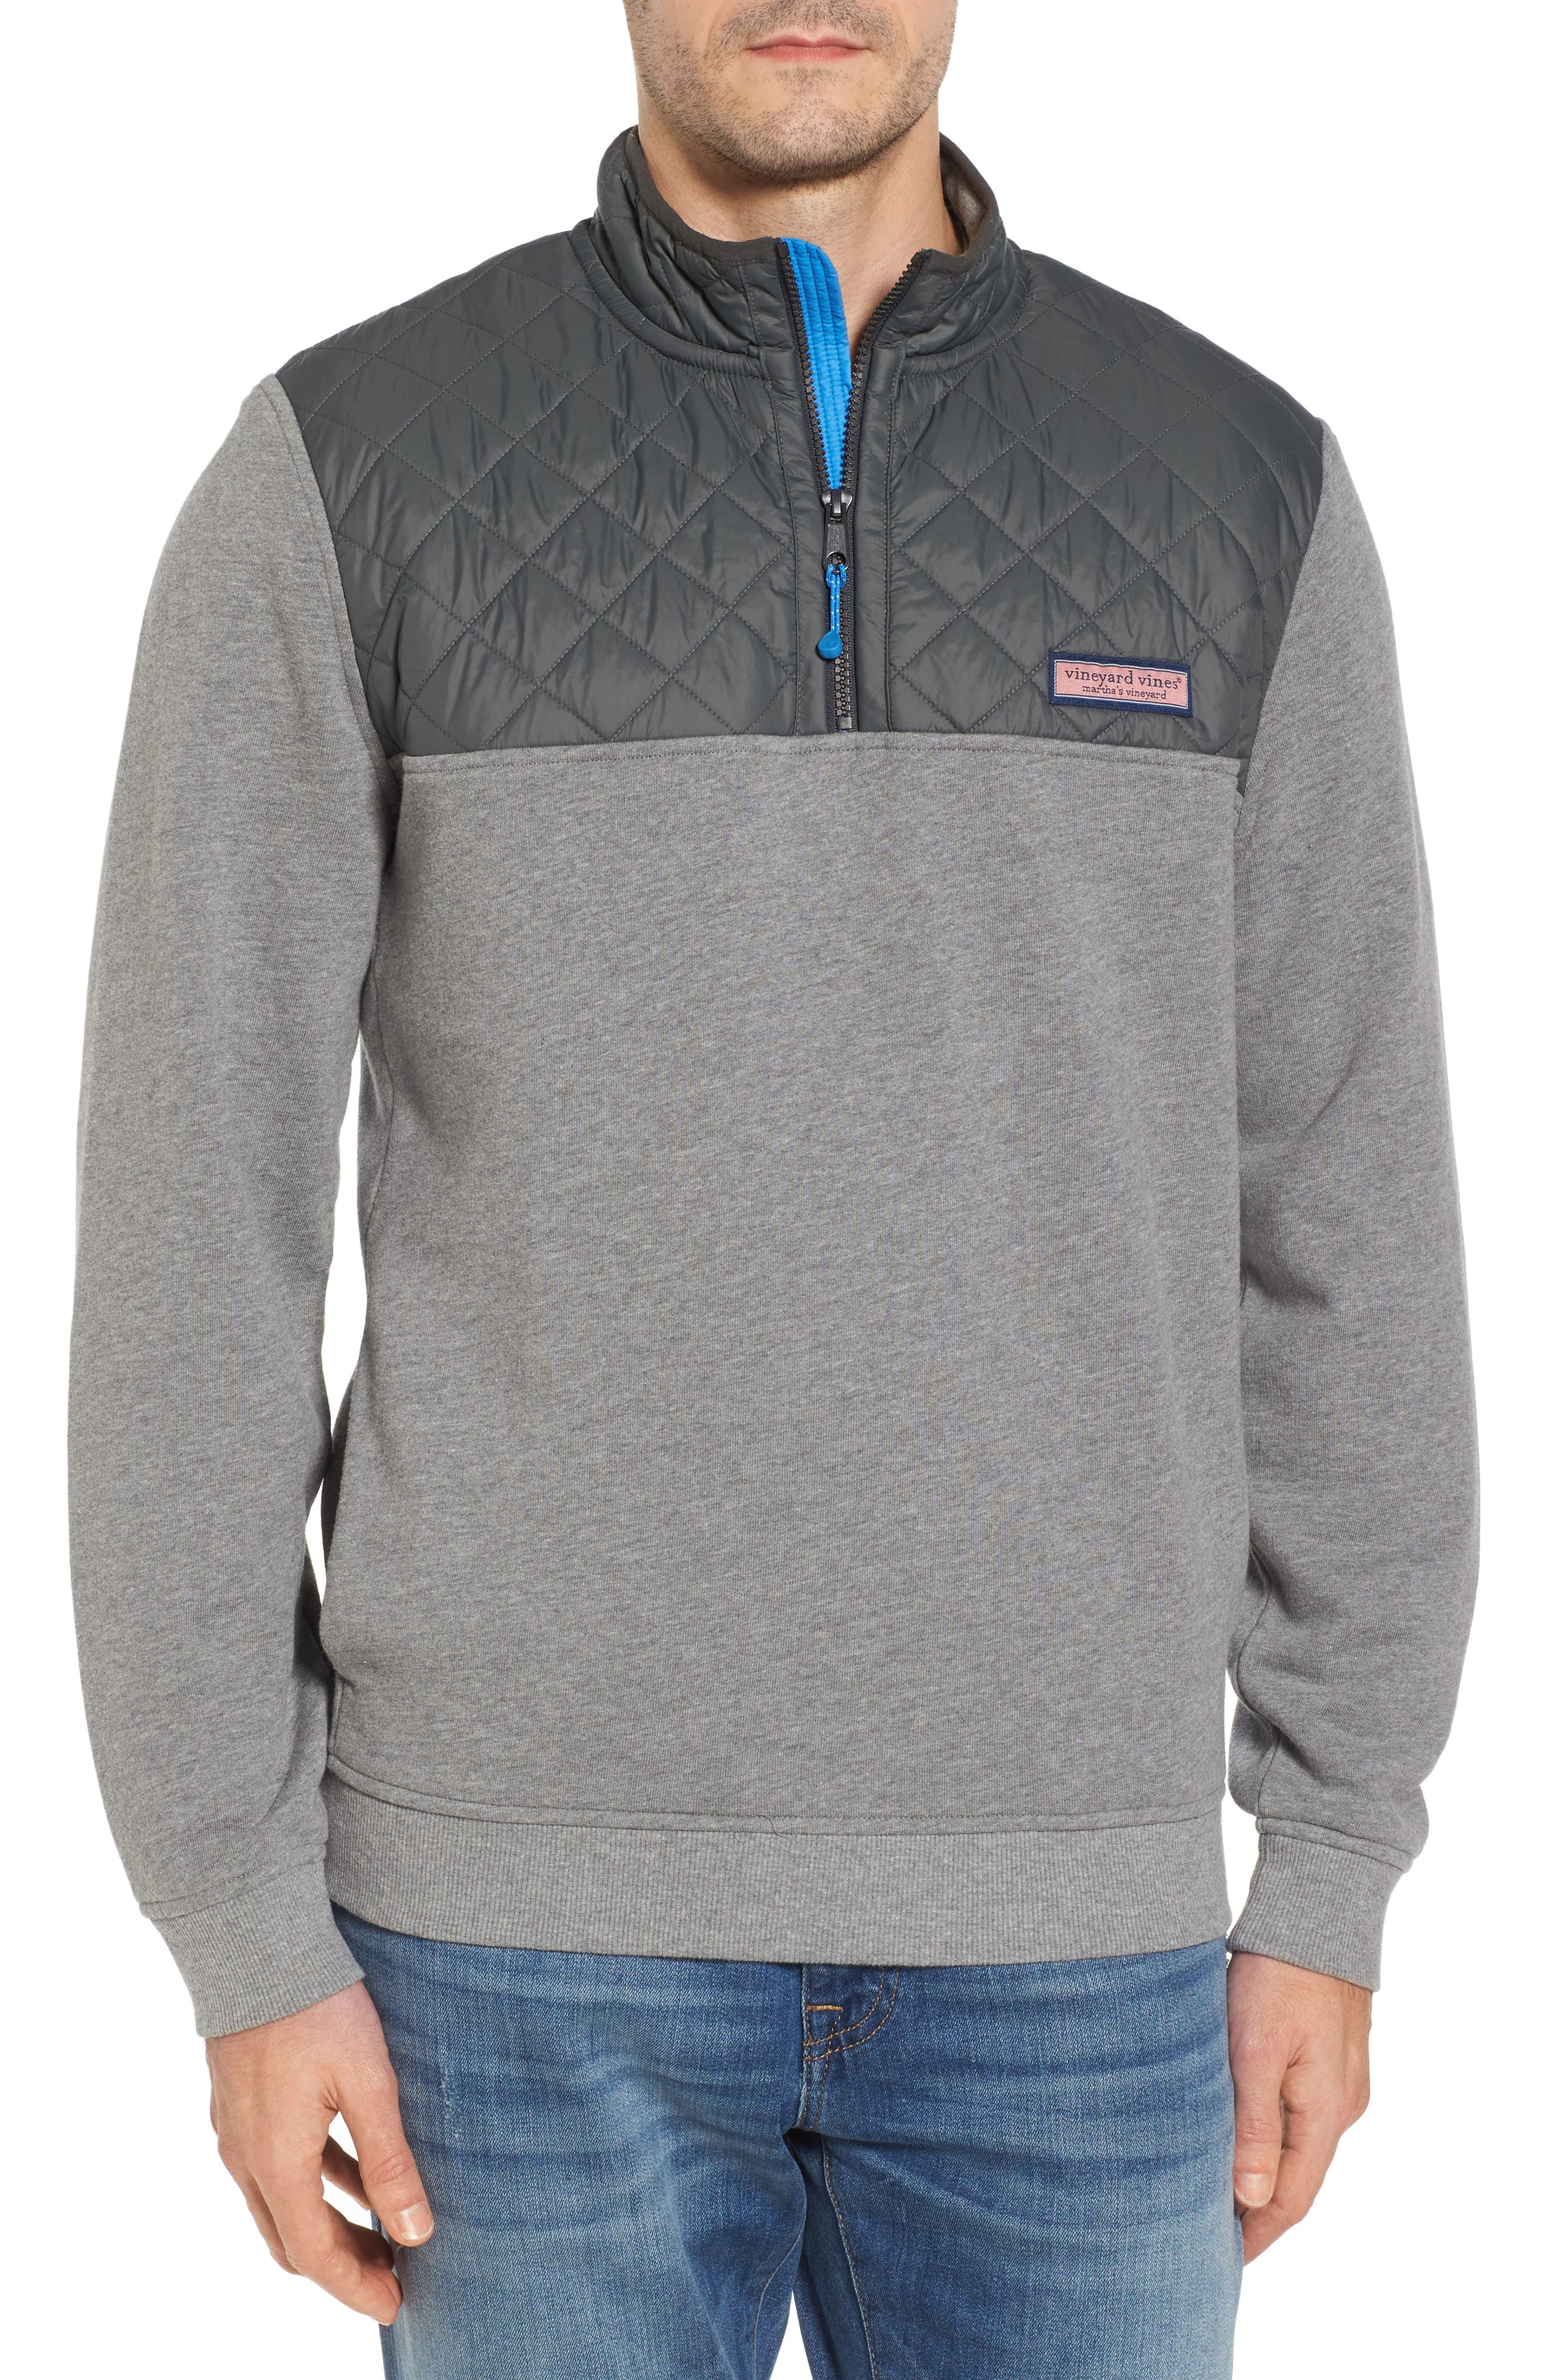 Shep Performance Quilted Yoke Quarter Zip Pullover,                             Main thumbnail 1, color,                             Medium Heather Grey